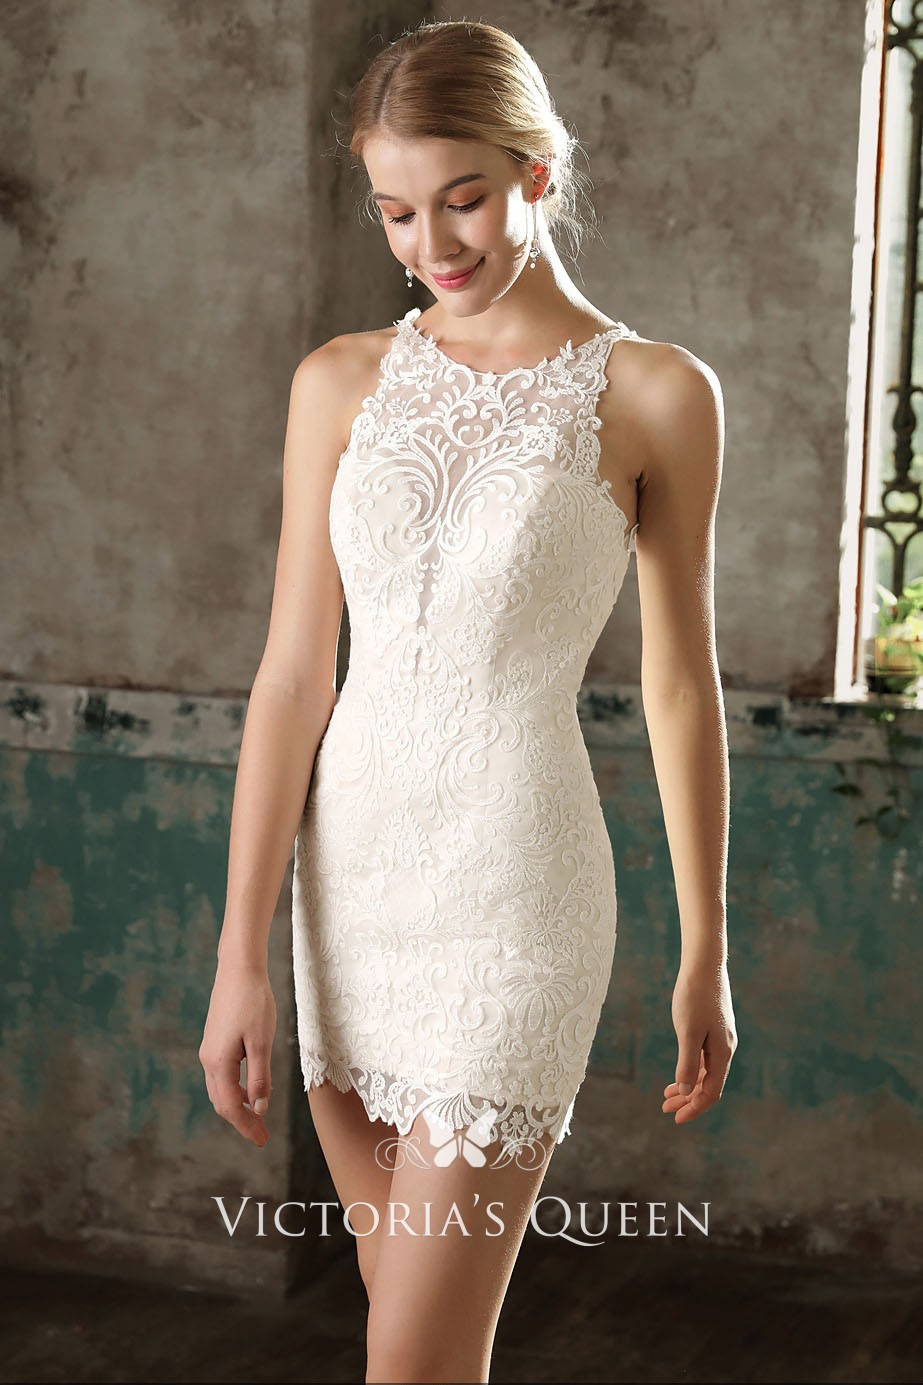 26526bca6555 Stylish Sleeveless Ivory Lace and Chiffon Overskirt Short Wedding ...